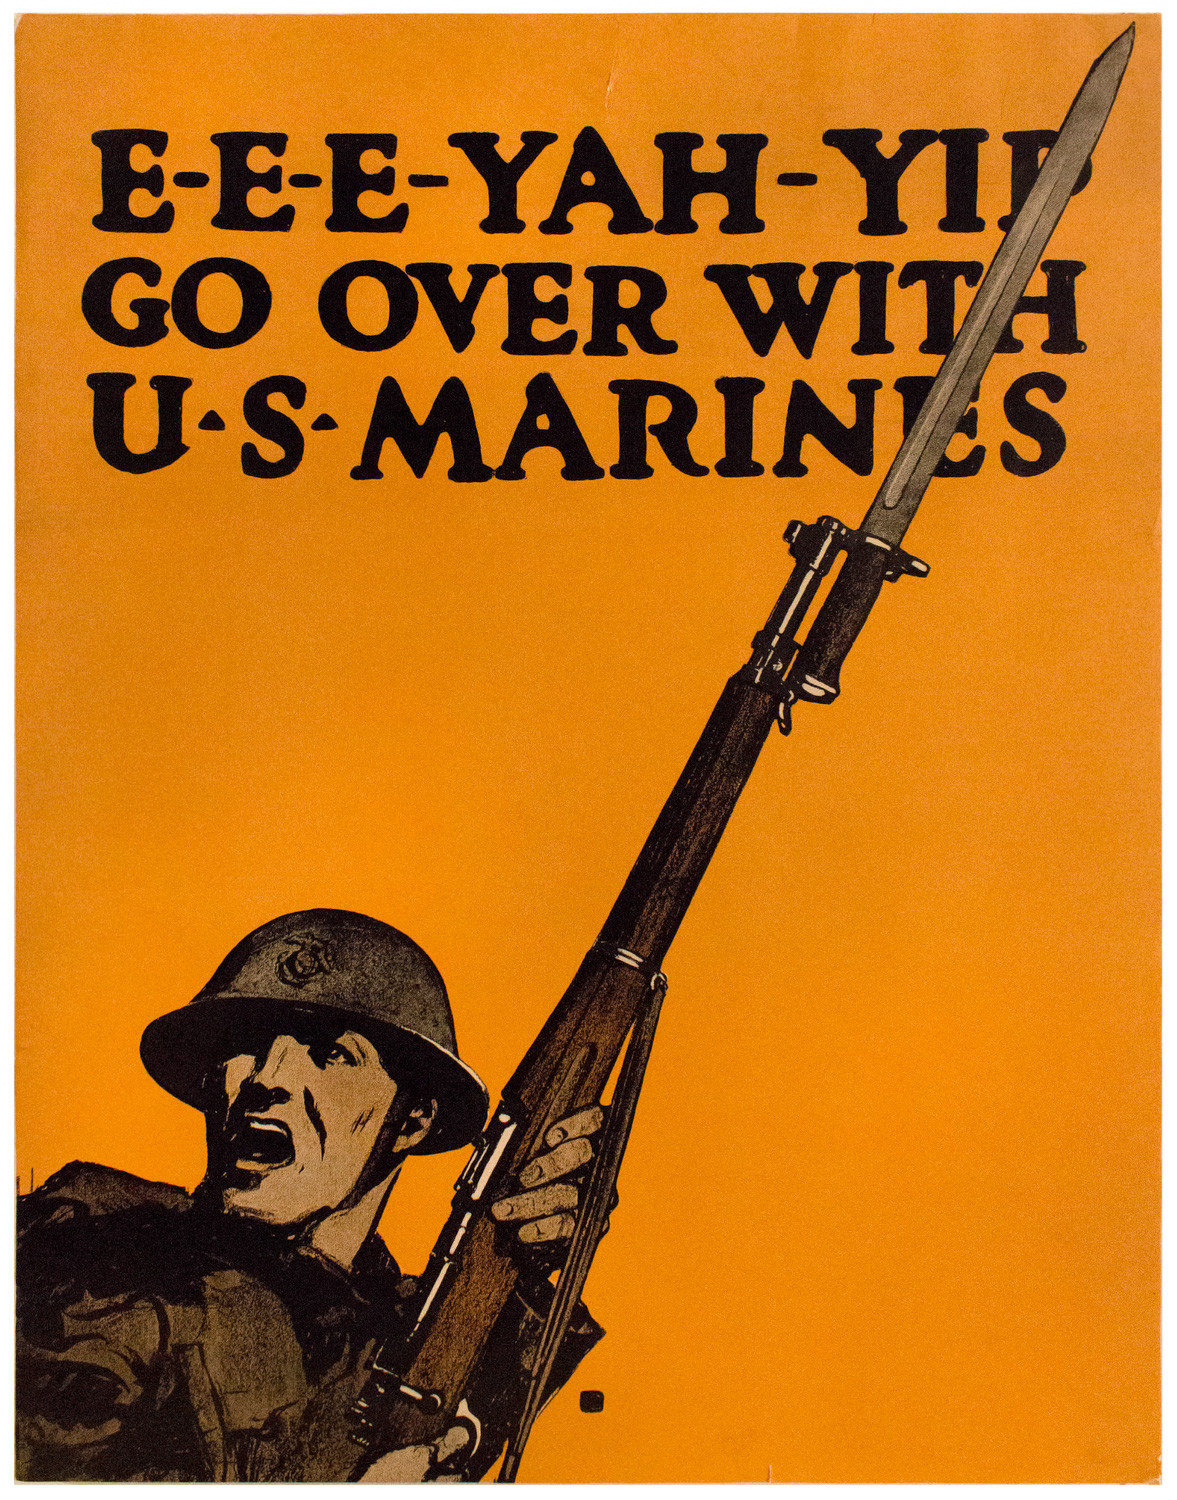 The United States started drafting eligible men between 21 and 30 to the armed forces in May 1917. In order to continue enlistment, Charles Buckles Falls' poster encouraged Americans there was a need for a draft.